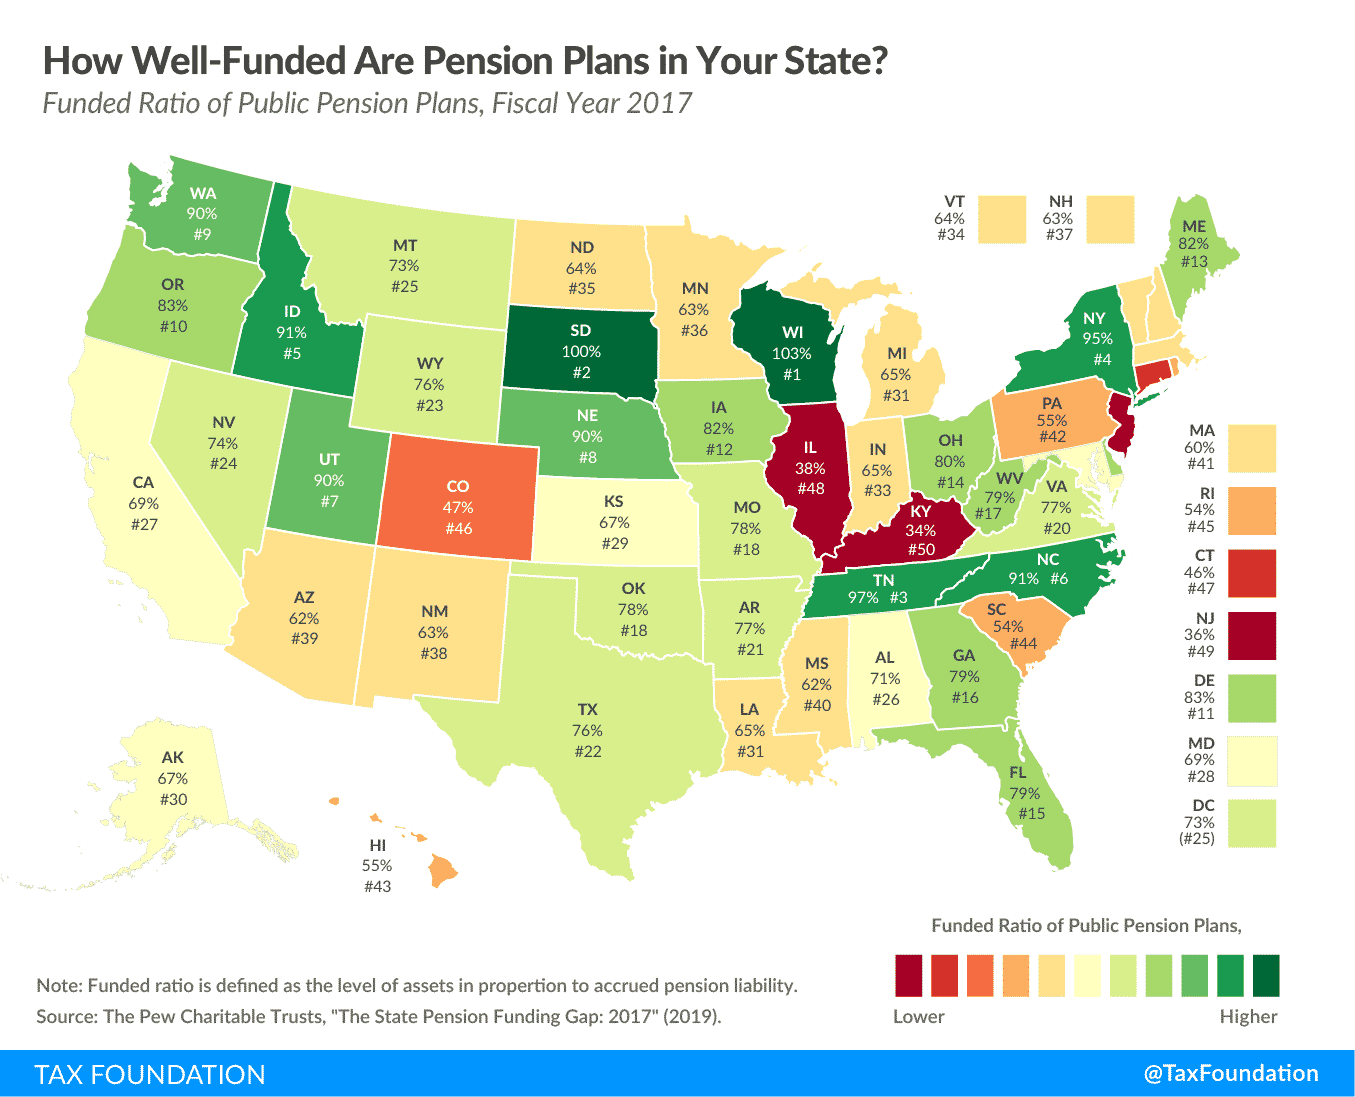 Iowa IPERS pension system is well funded